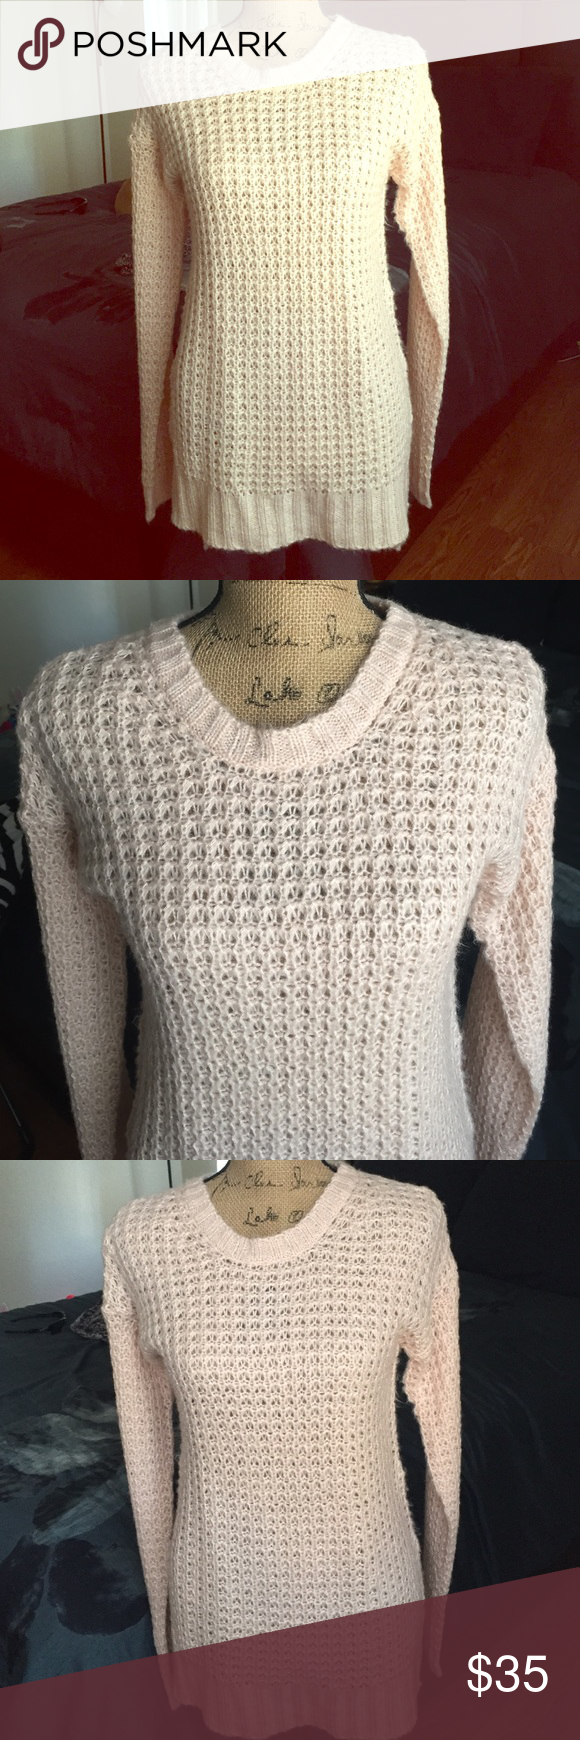 Cute knit light pink sweater high low 💕 | Seasons, High low and ...